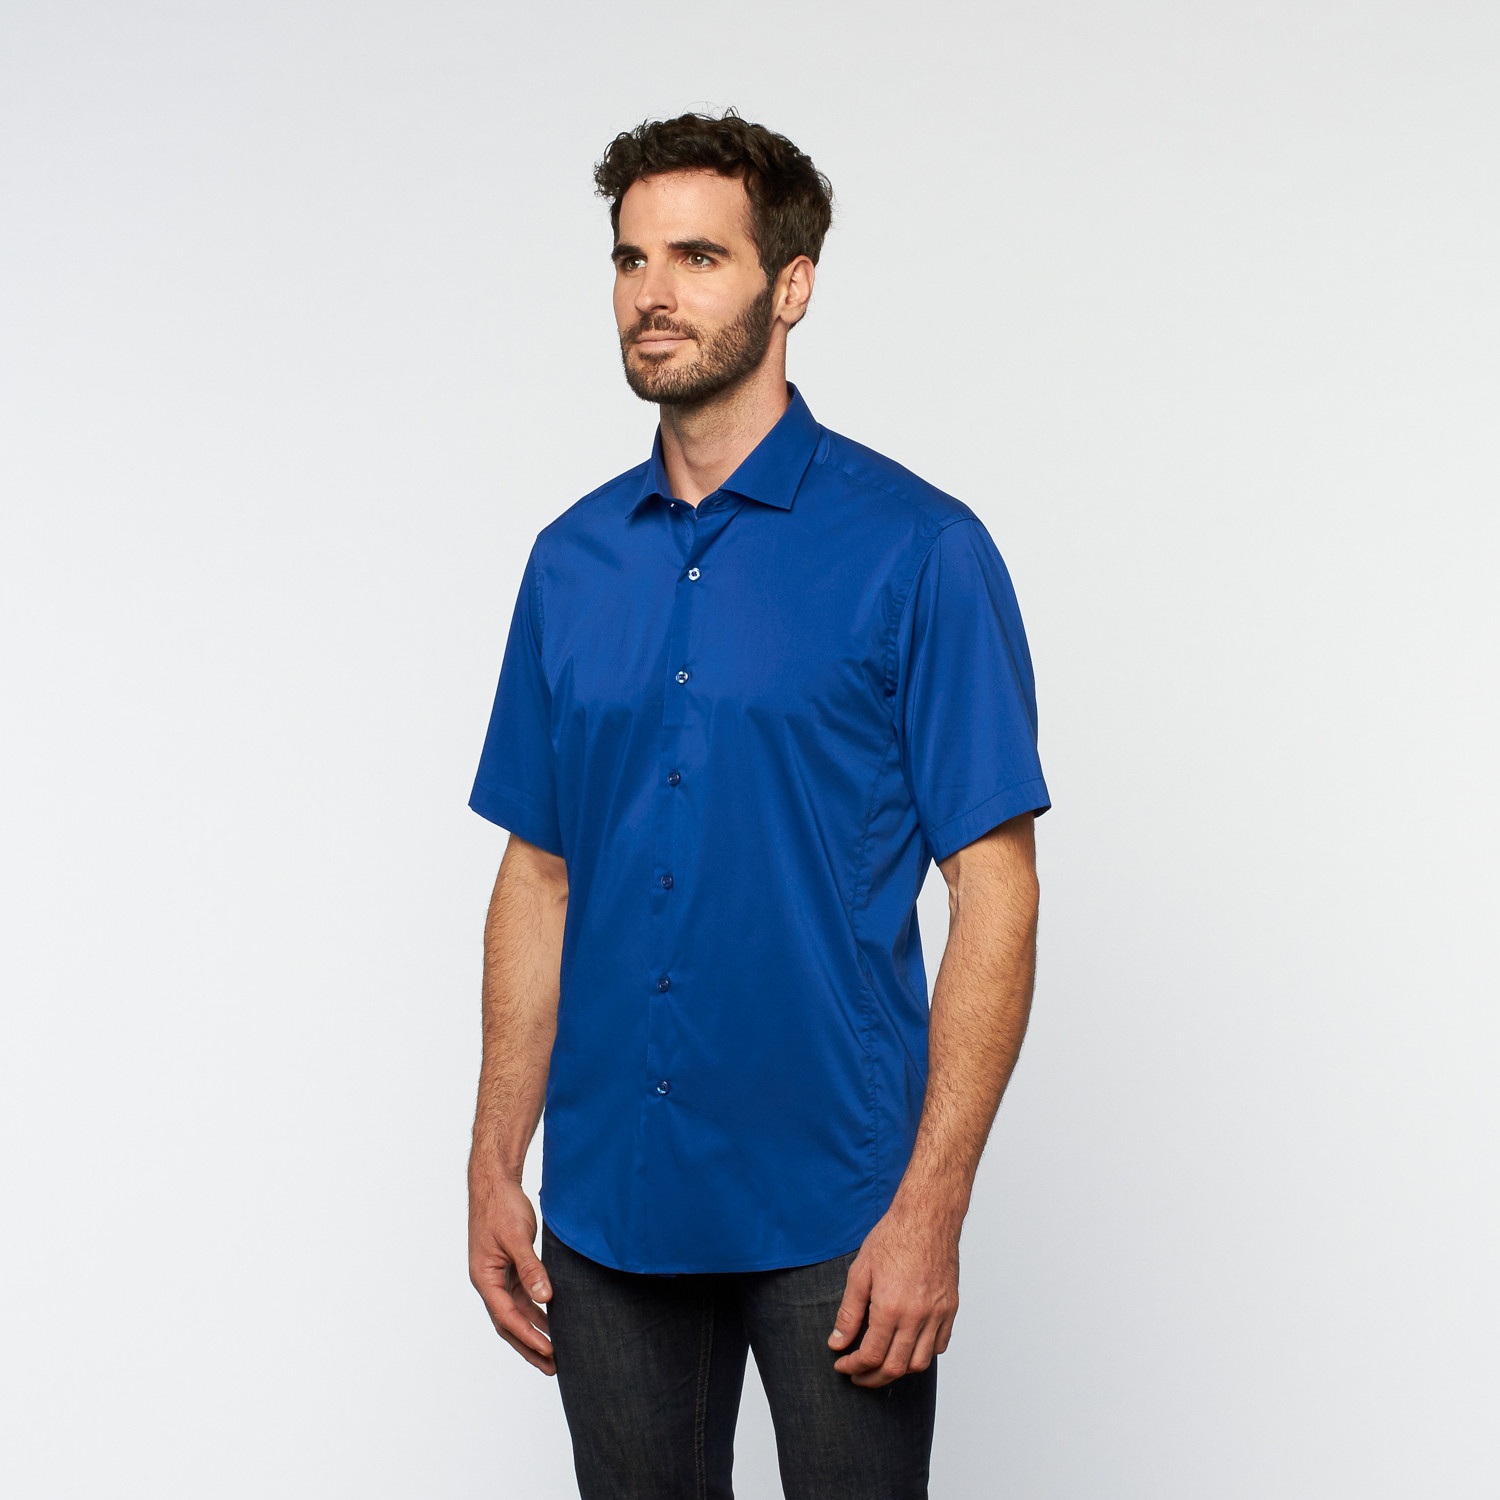 Brio milano button up short sleeve shirt royal blue for Royals button up shirt